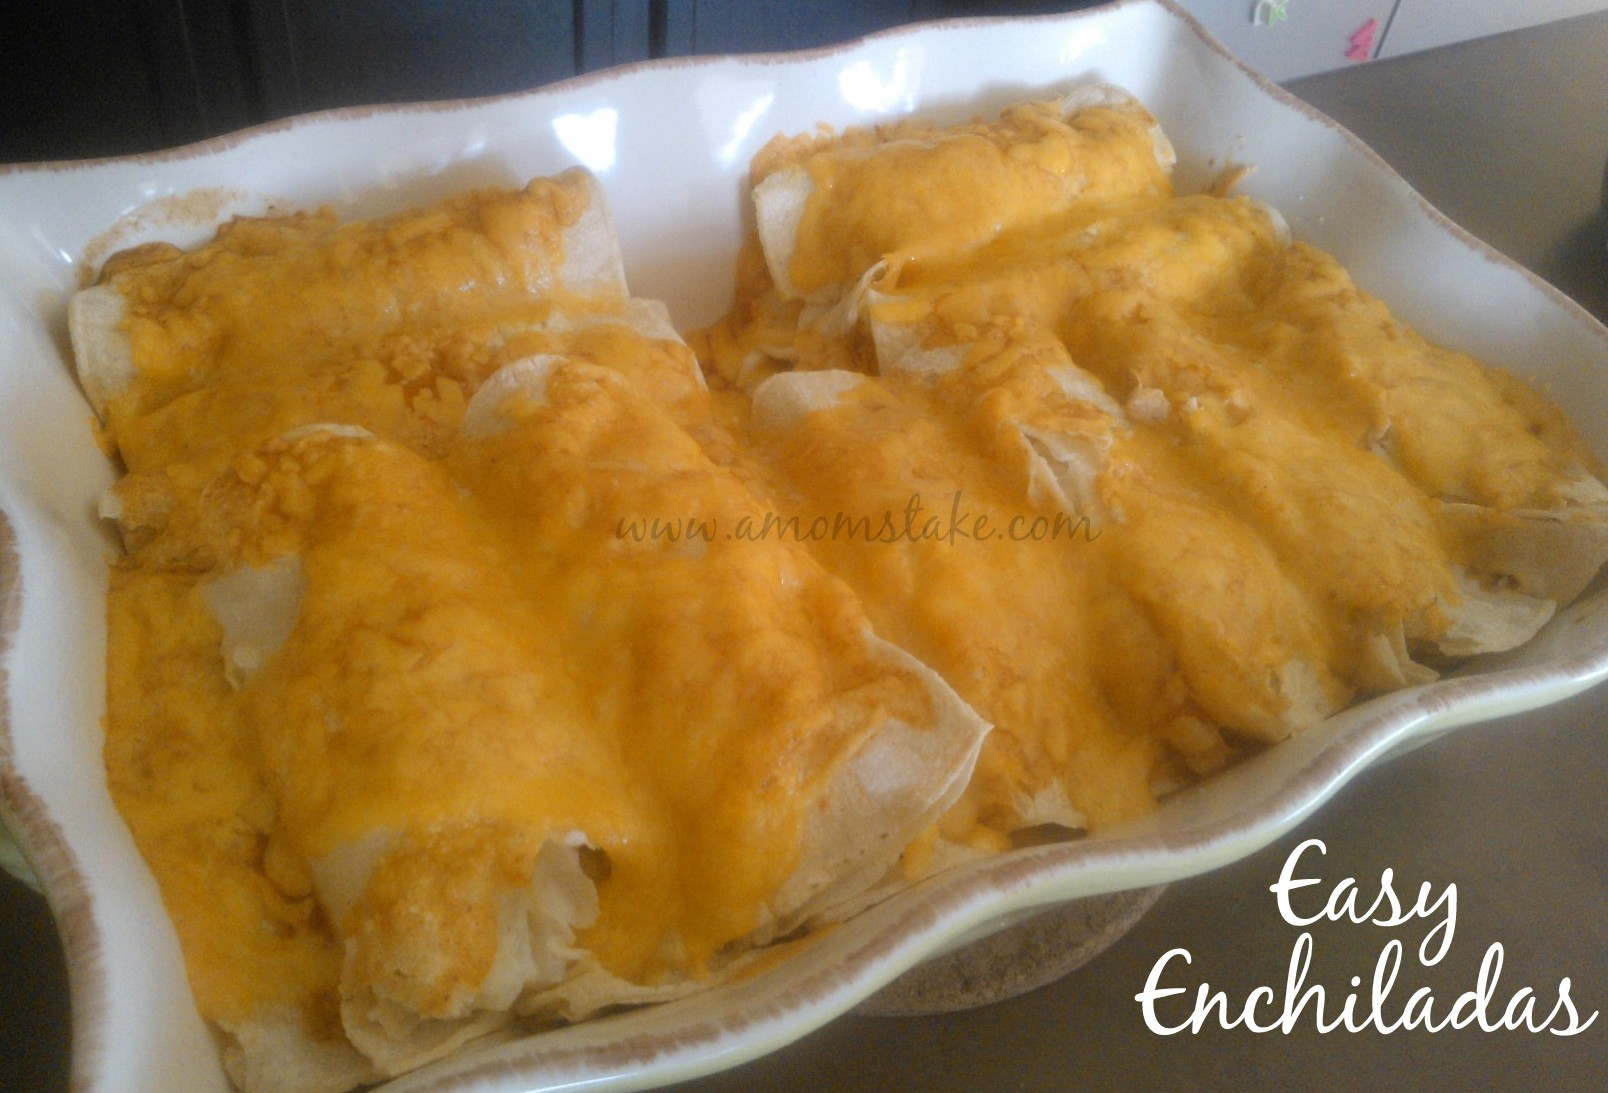 Easy dinner recipes chicken enchilada recipe a moms take easy chicken enchilada recipe forumfinder Choice Image